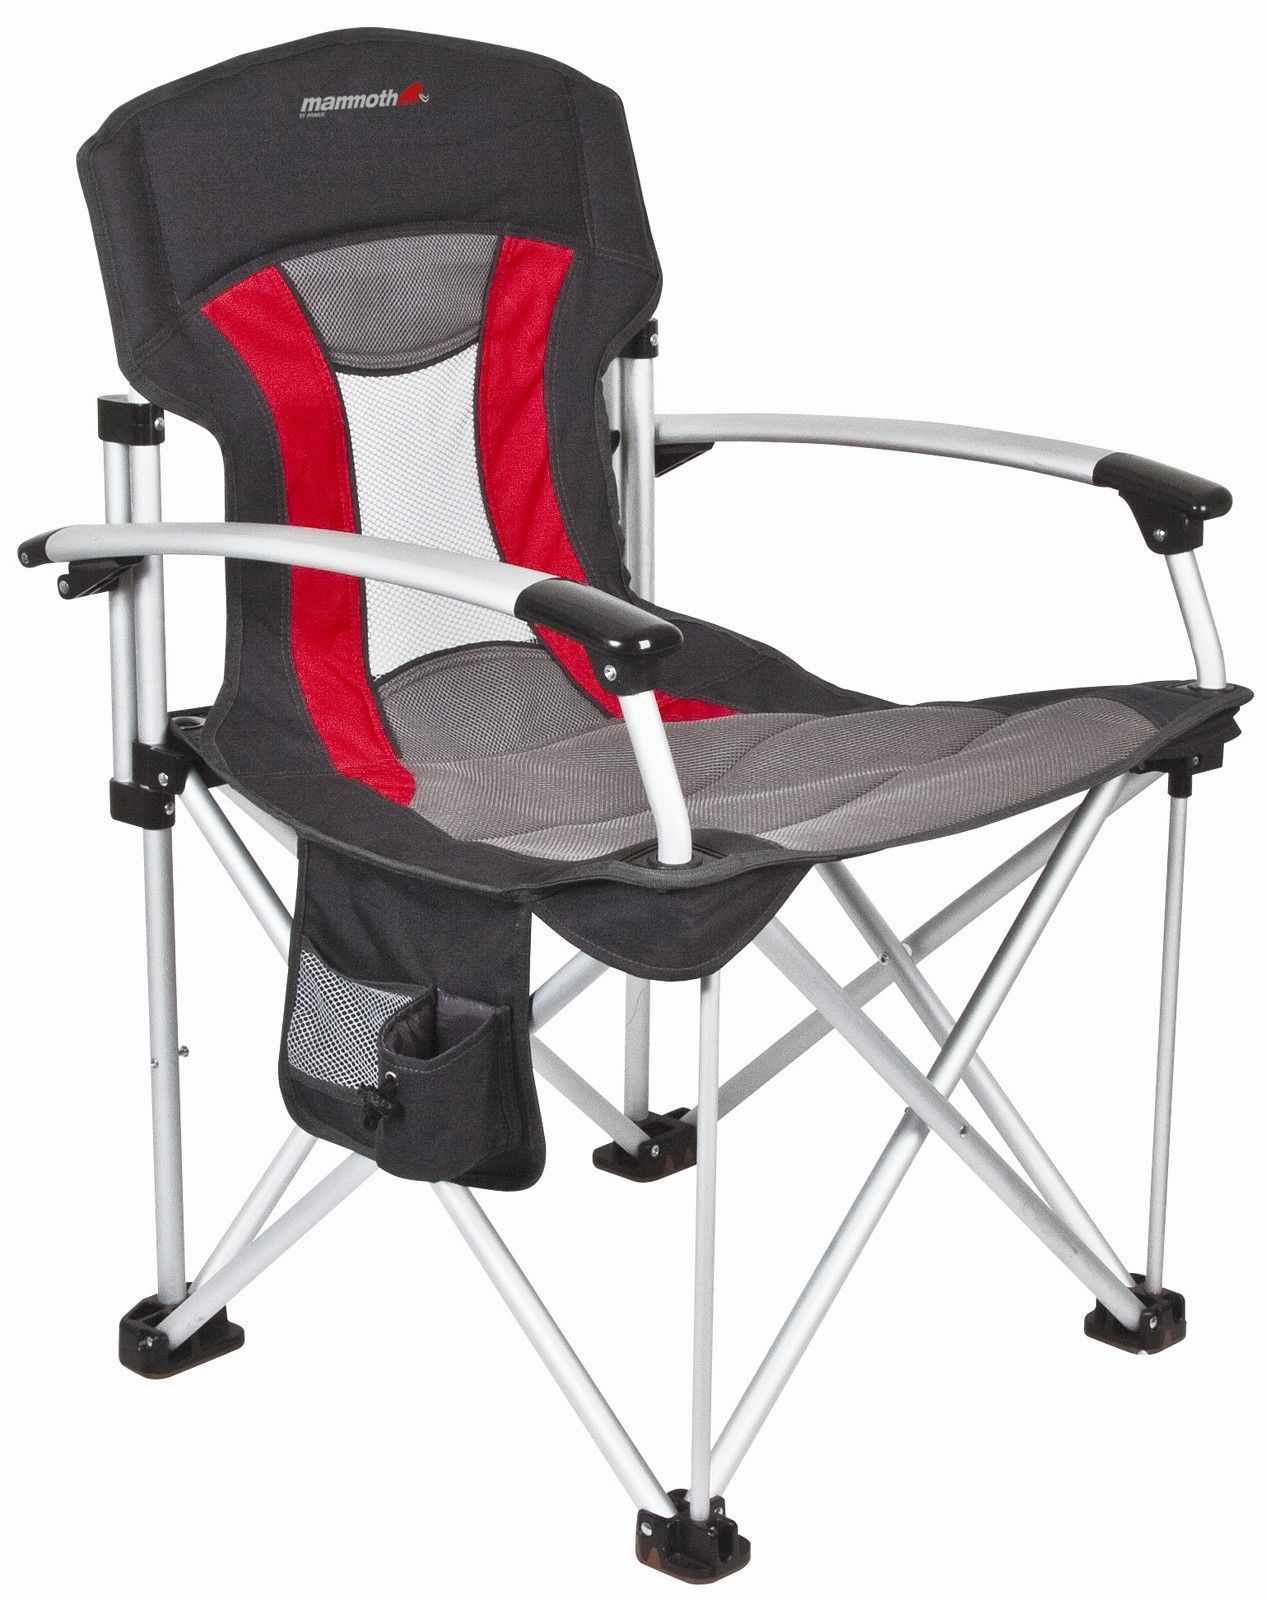 Mammoth Deluxe Aluminum Outdoor Chair Aluminum chairs